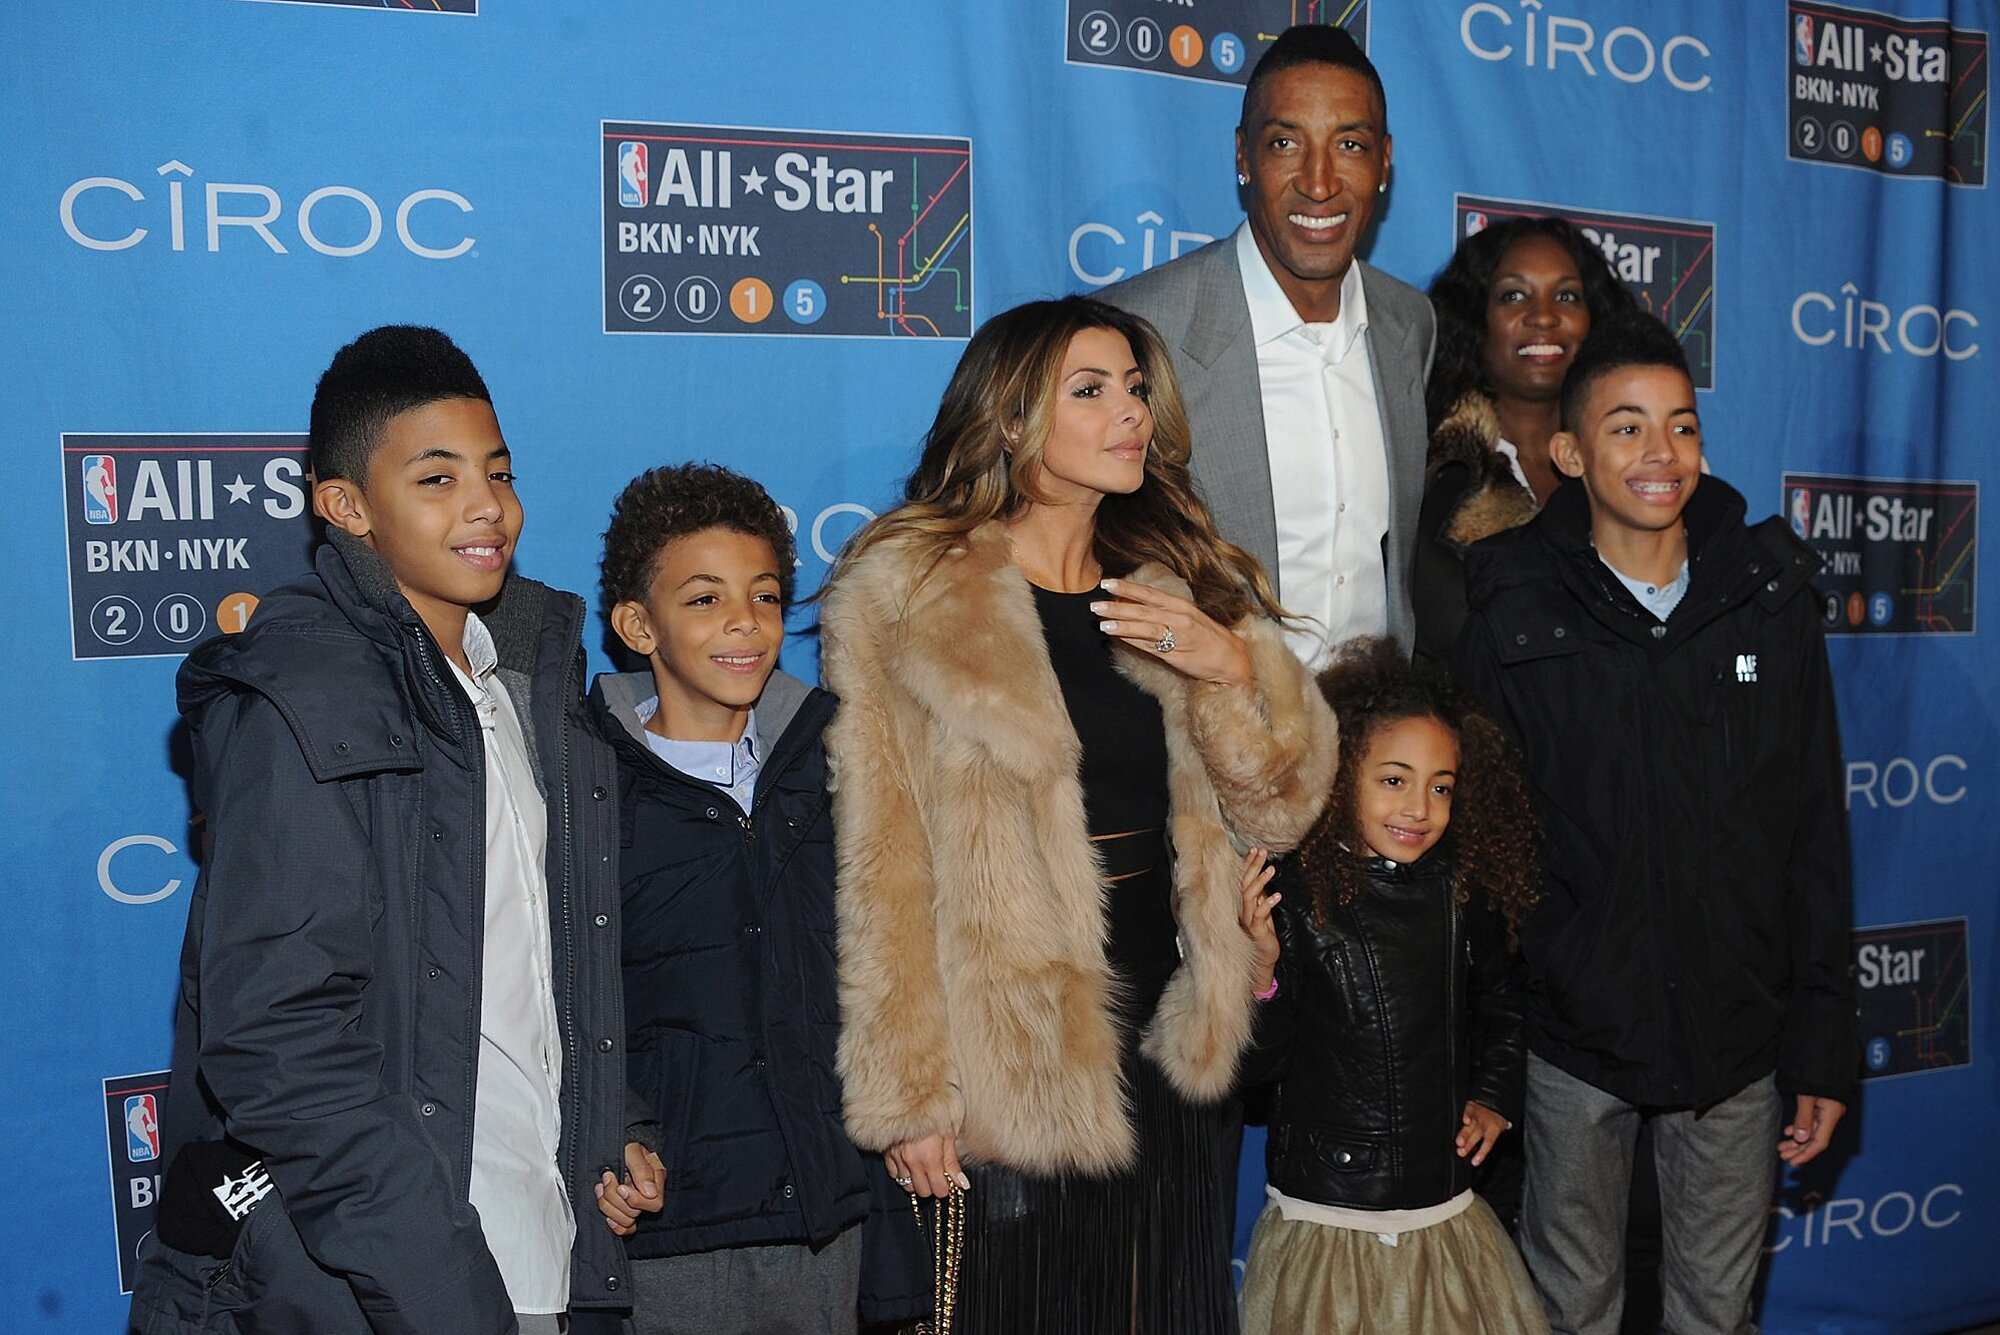 Larsa Pippen Files for Divorce from Scottie Pippen | PEOPLE.com